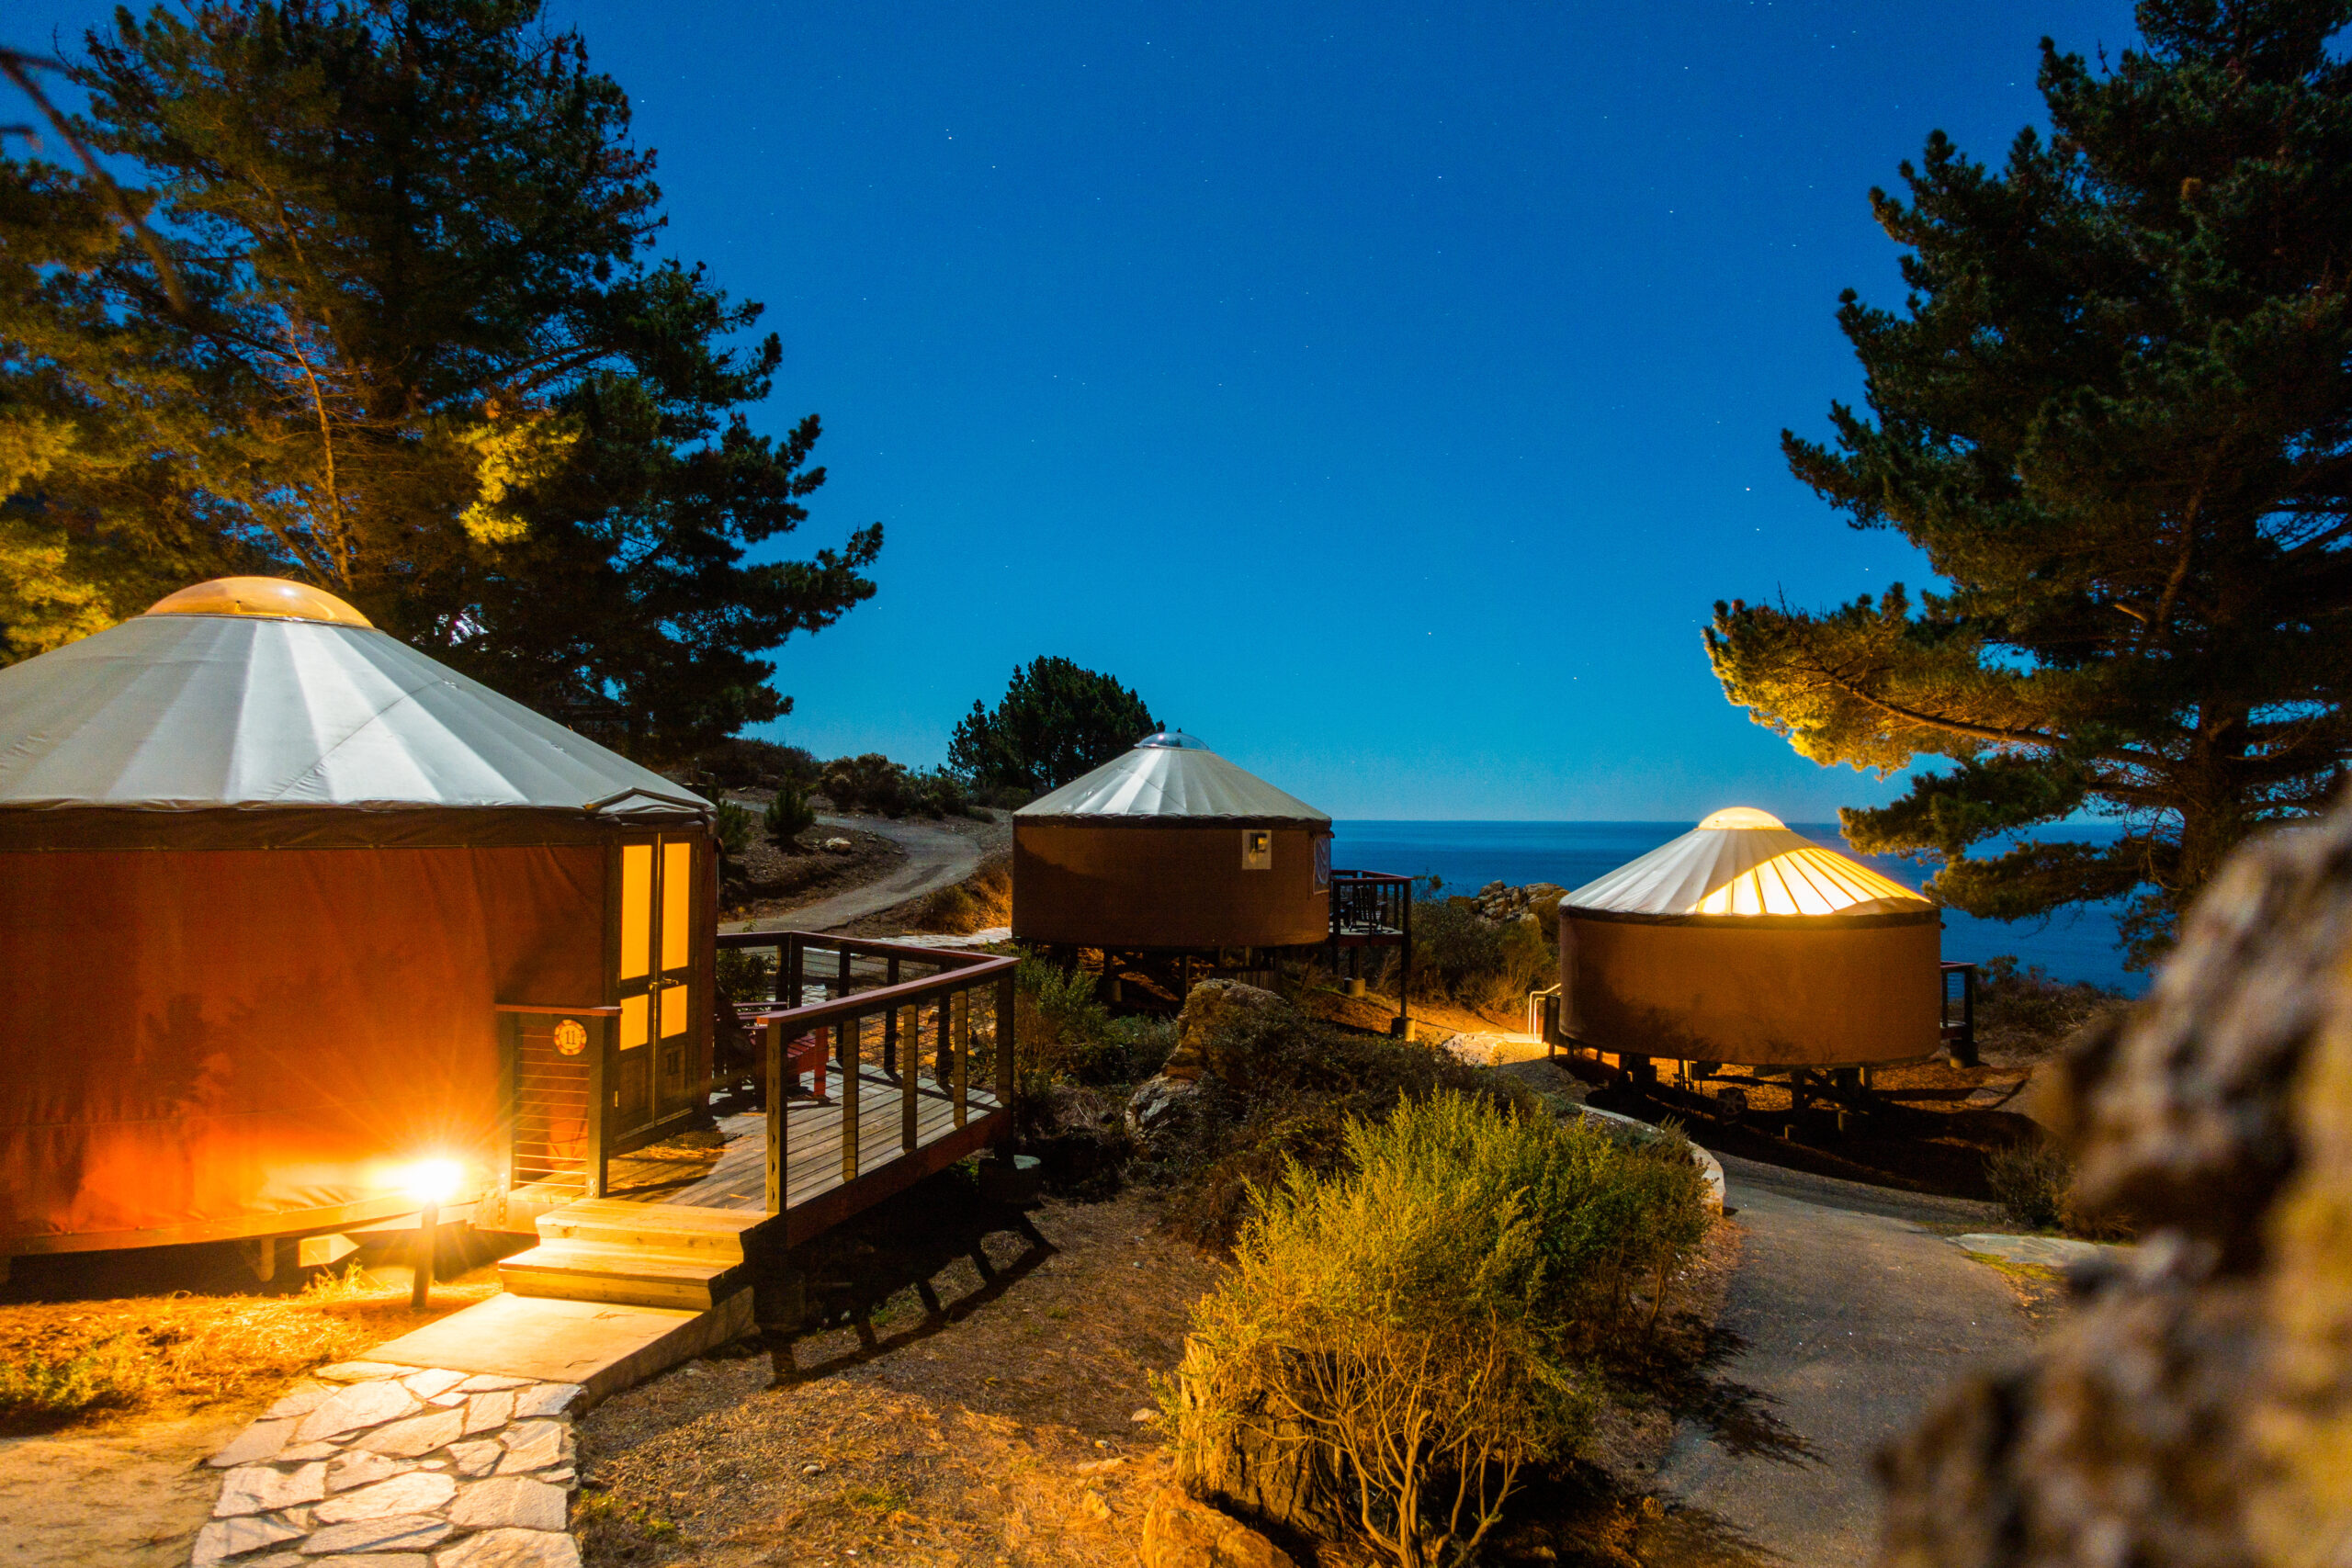 Yurts/tents under starlit sky in the woods, Big Sur, California